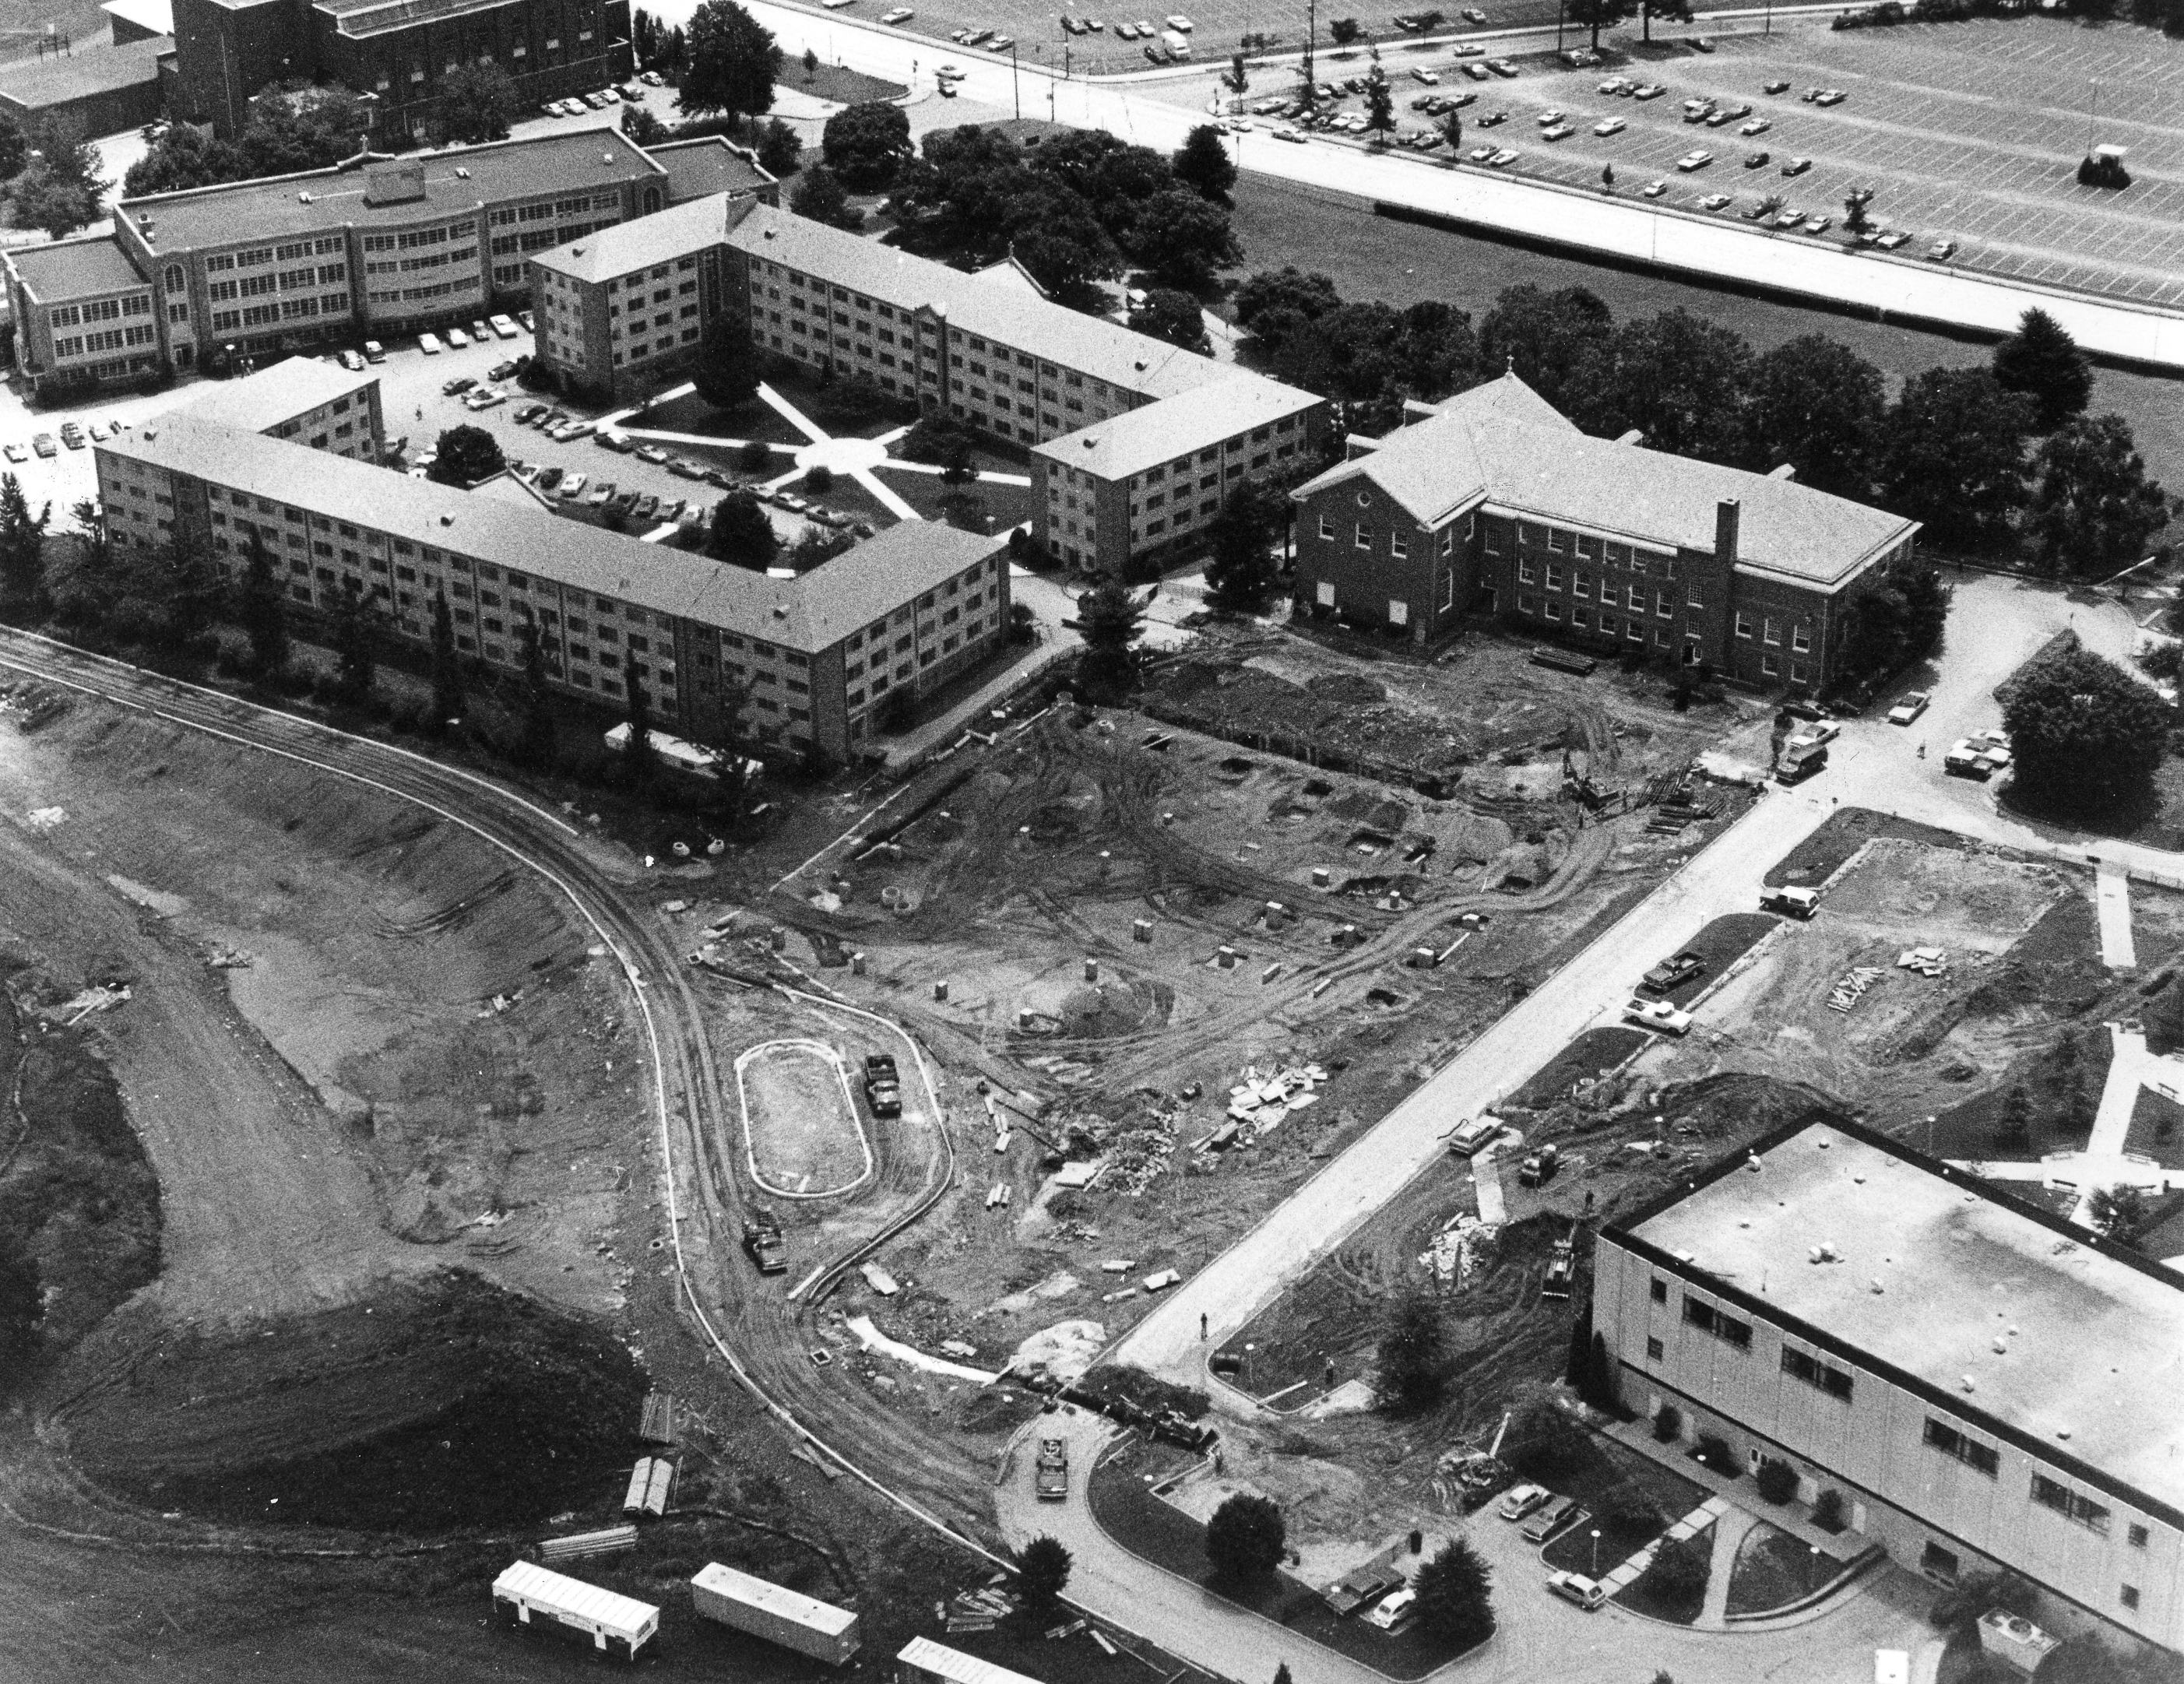 Construction at Villanova University, 1978